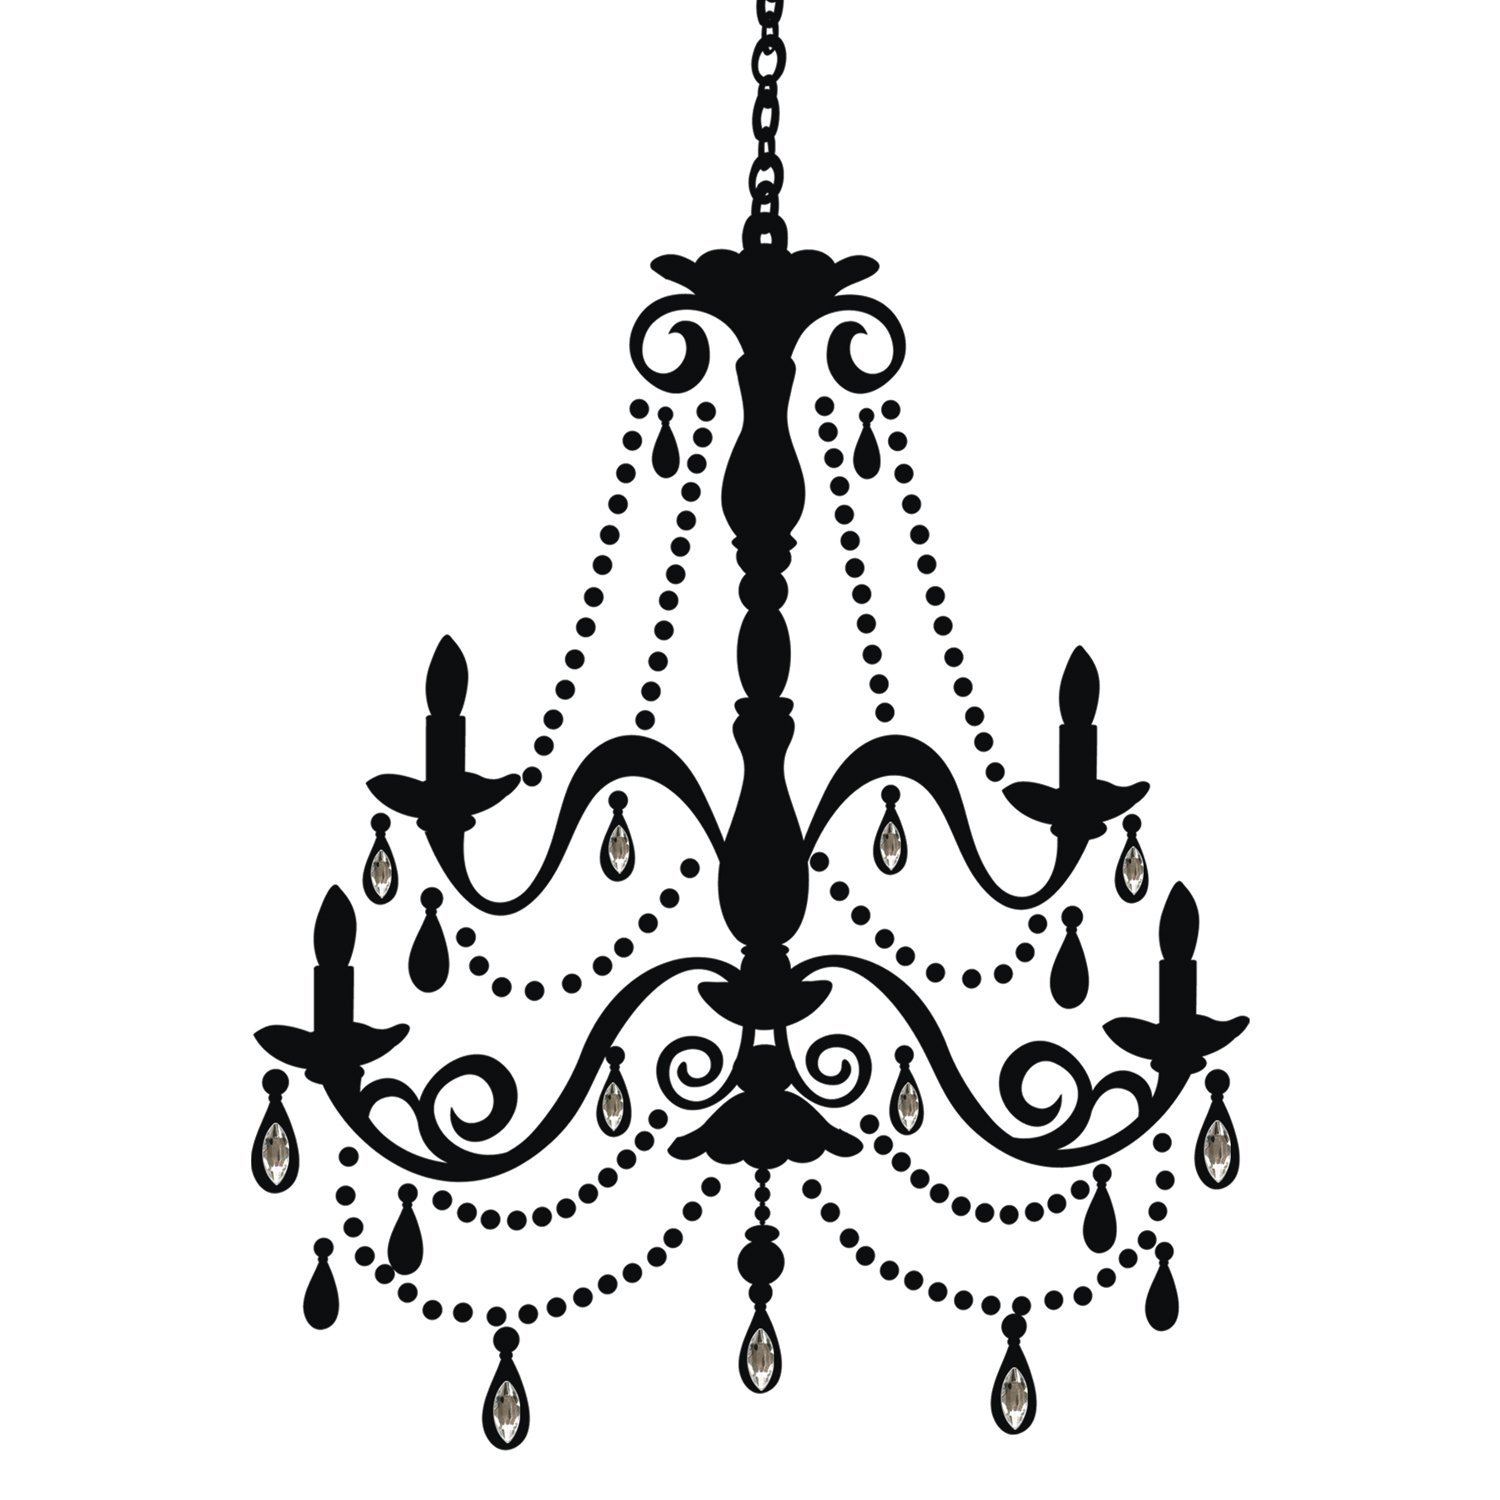 Drawn chandelier wall decal Wall Chandelier Decal(China (Mainland) and